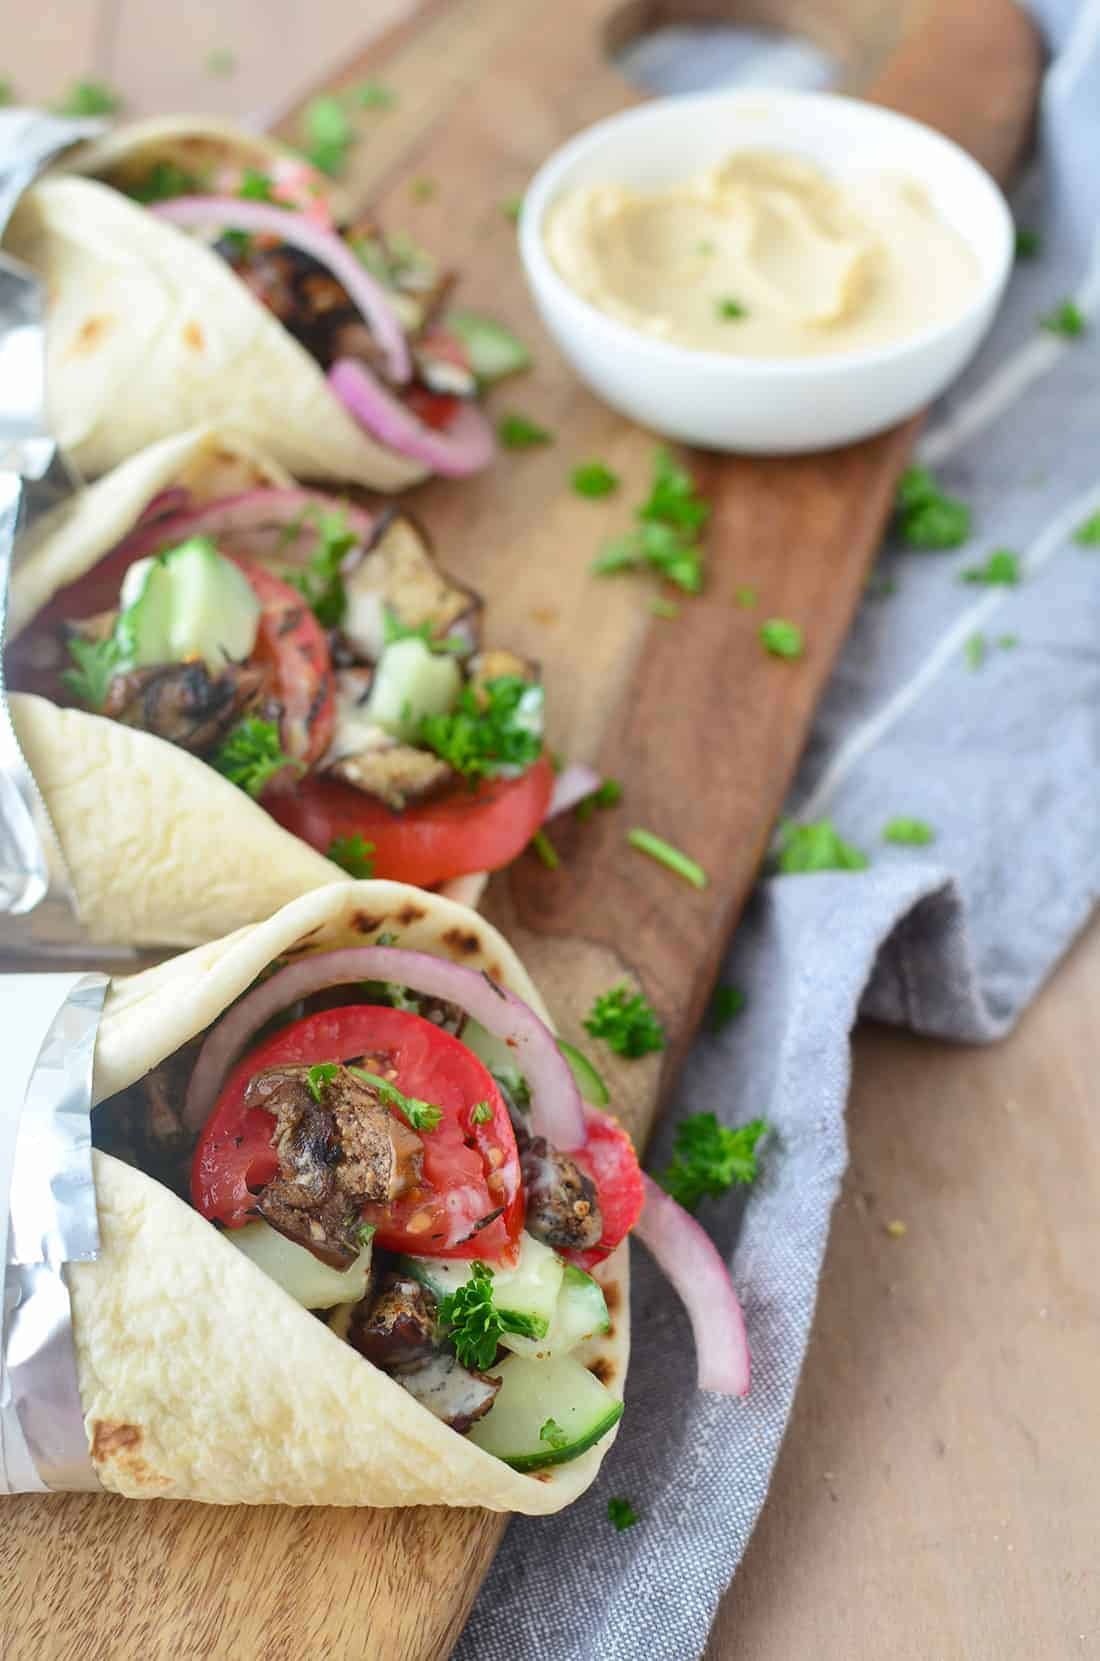 You'd never guess this was vegan! Meaty eggplant gyros stuffed with vegetables, herbs and the best hummus sauce. So good! #vegan #vegetarian | www.delishknowledge.com